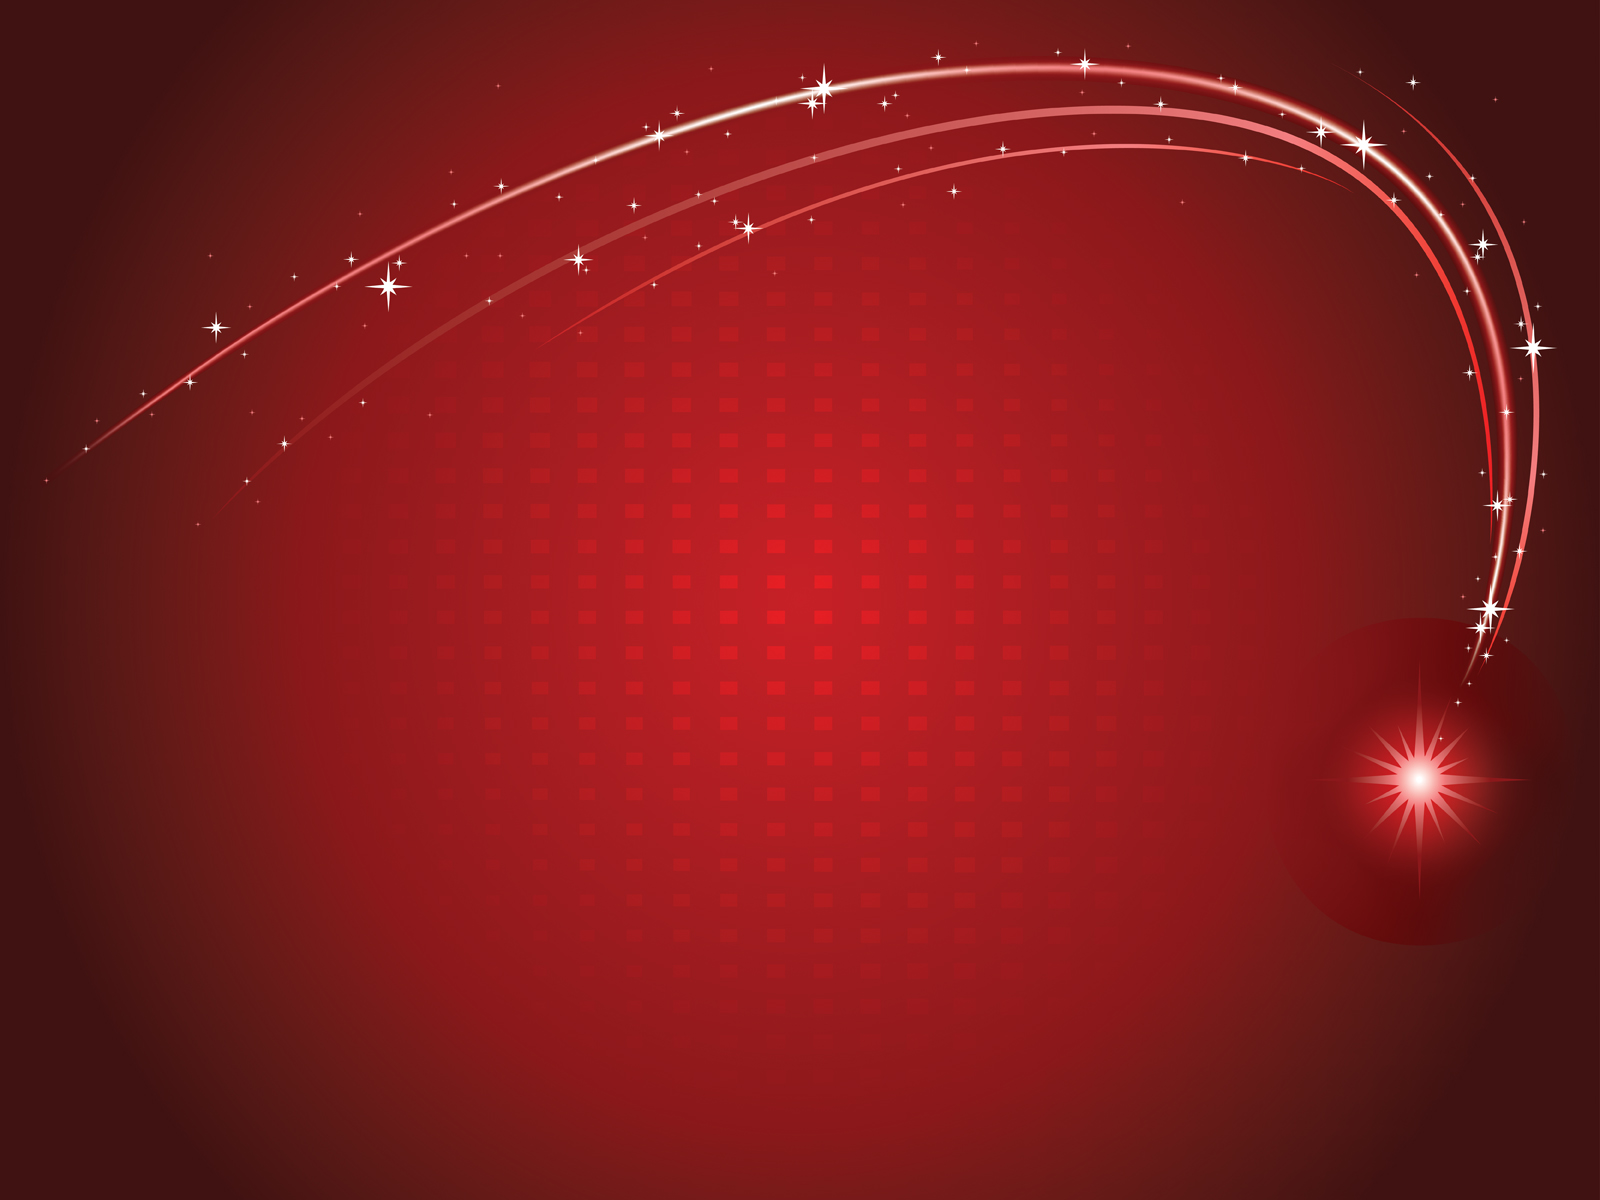 Tail Of A Cornet Celebration Backgrounds Abstract